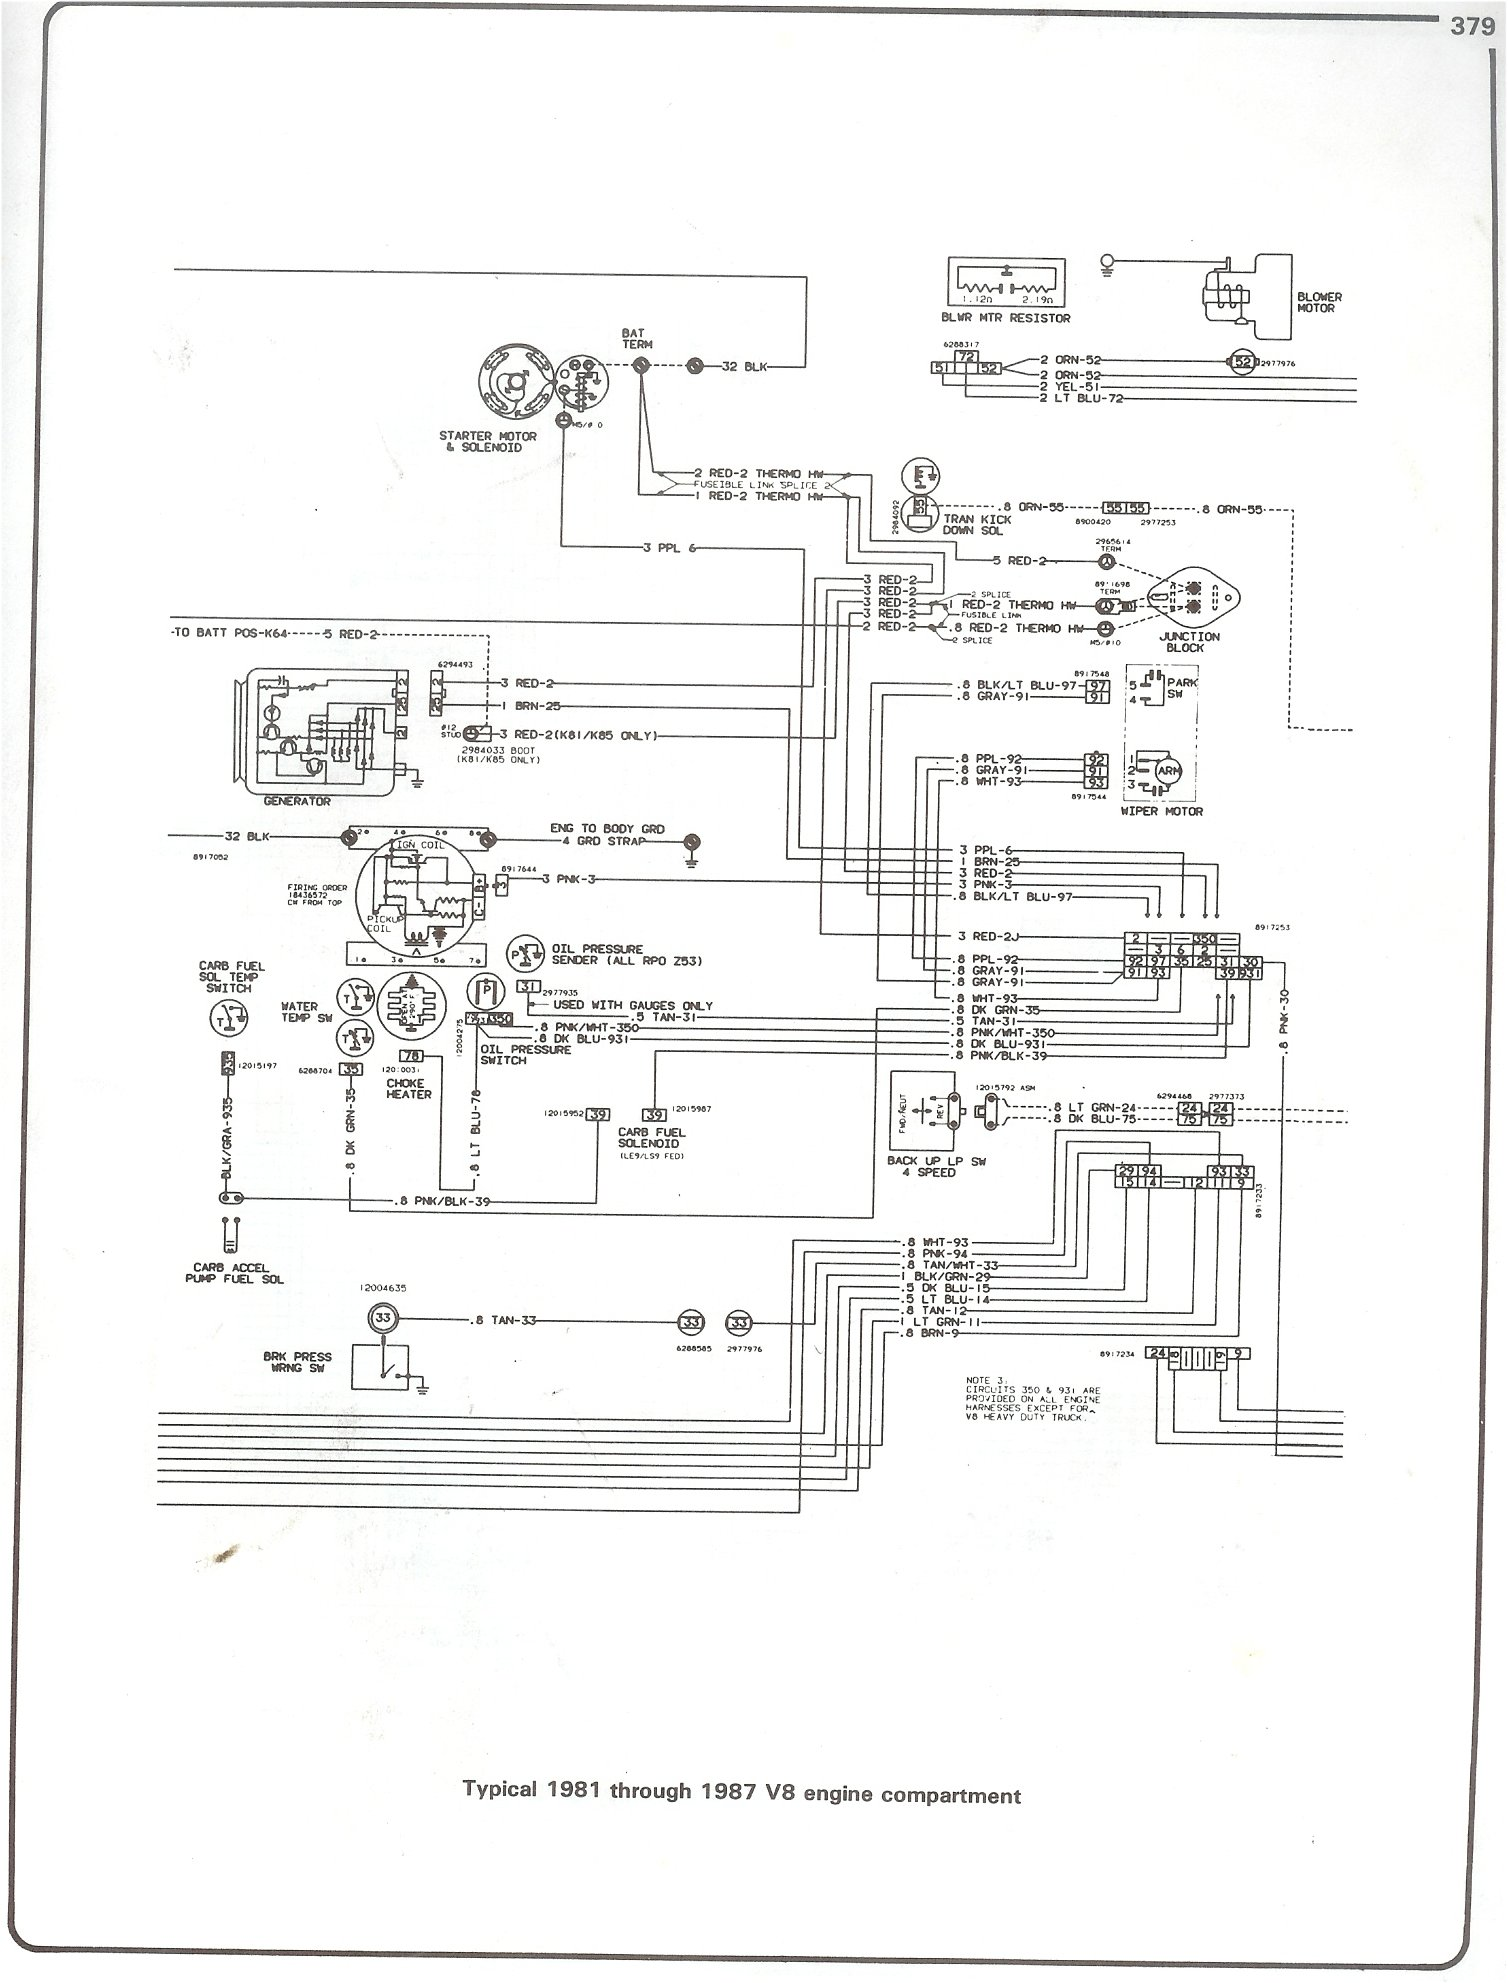 complete 73 87 wiring diagrams rh forum 73 87chevytrucks com 78 GMC Wiring Diagram 78 Ford Wiring Diagram